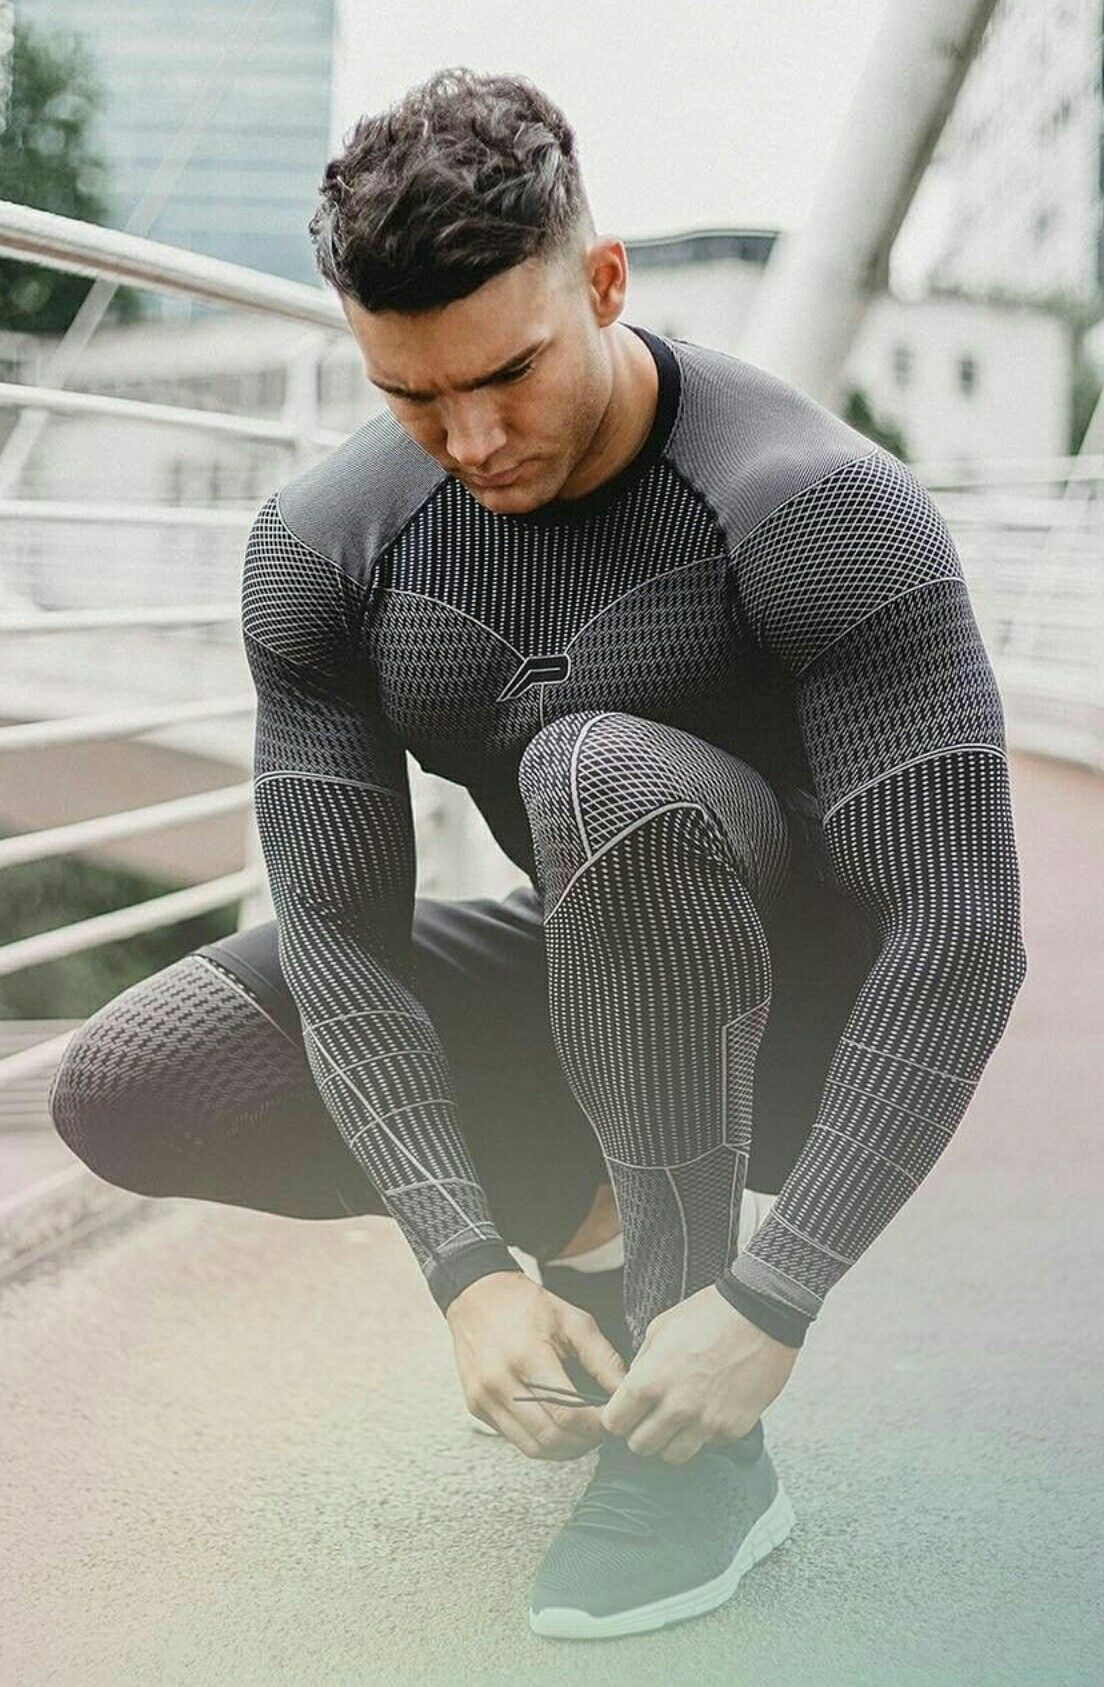 Men's sport wears | Ropa deportiva para hombre, Ropa gym